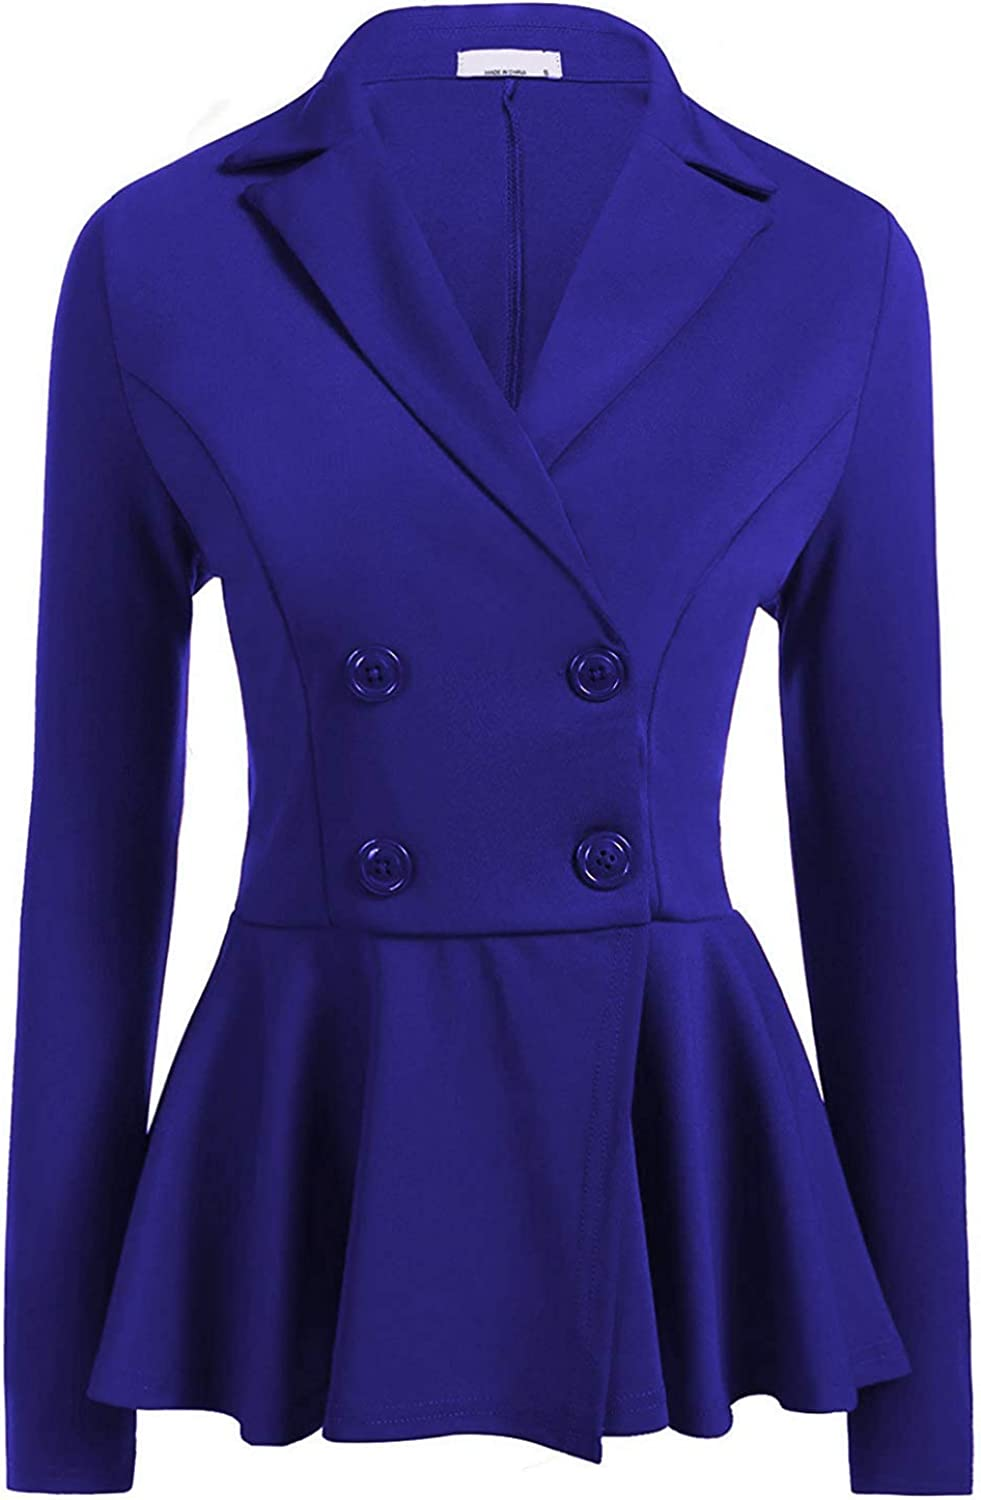 Befily Womens Work Office Open Front Blazer Casual Long Sleeve Jacket with Buttons bluee